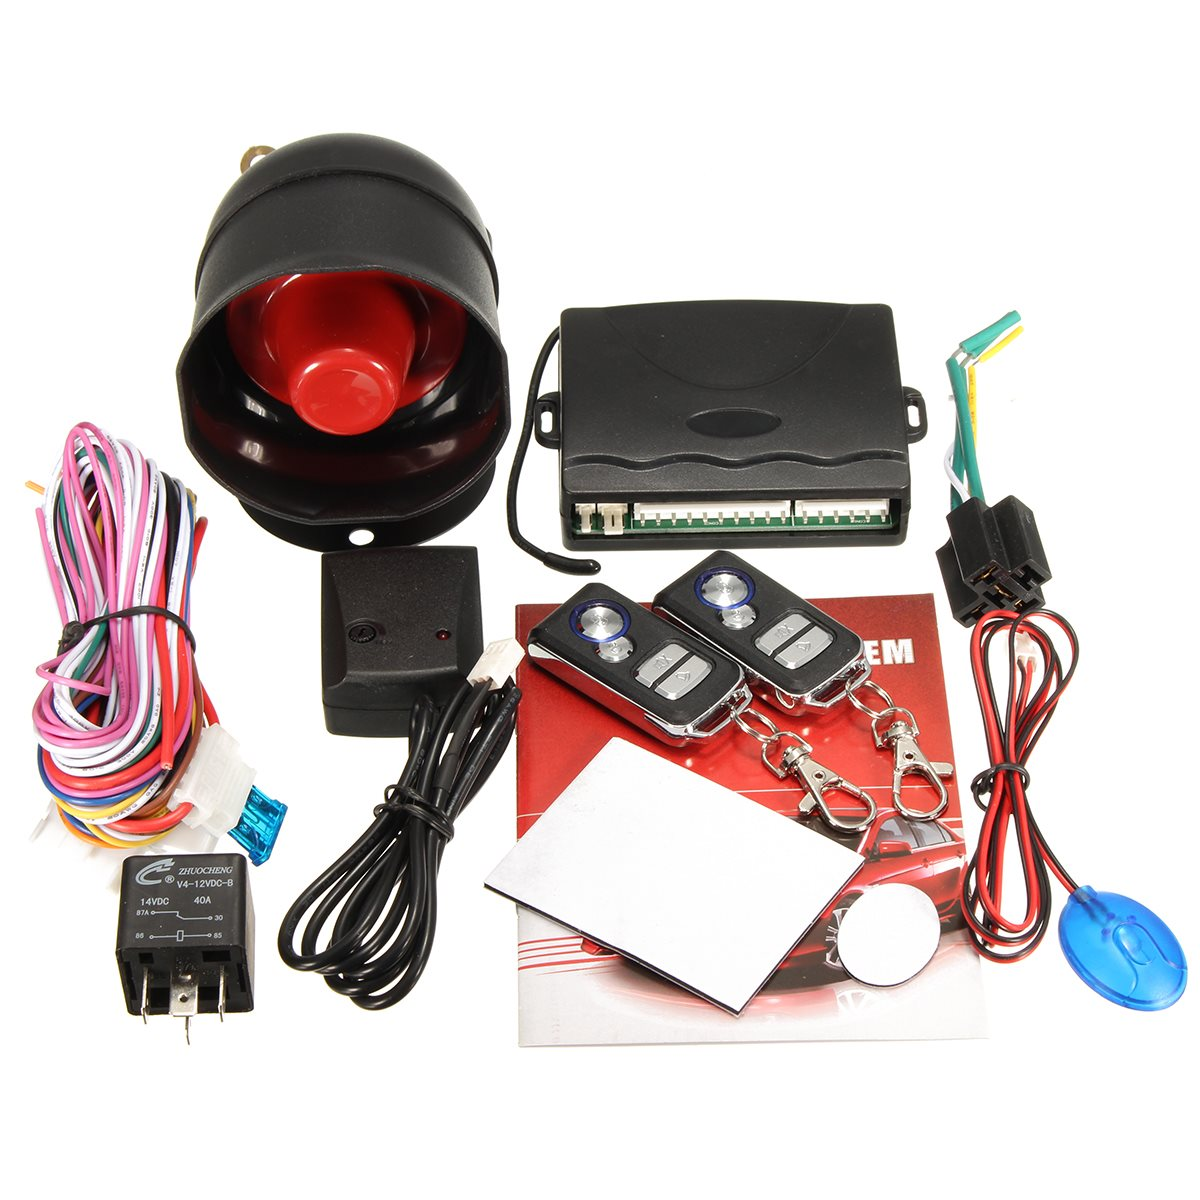 NEW Universal 1-Way Car Vehicle Alarm Protection Security System Keyless Entry Siren +2 Remote Control Burglar(China (Mainland))